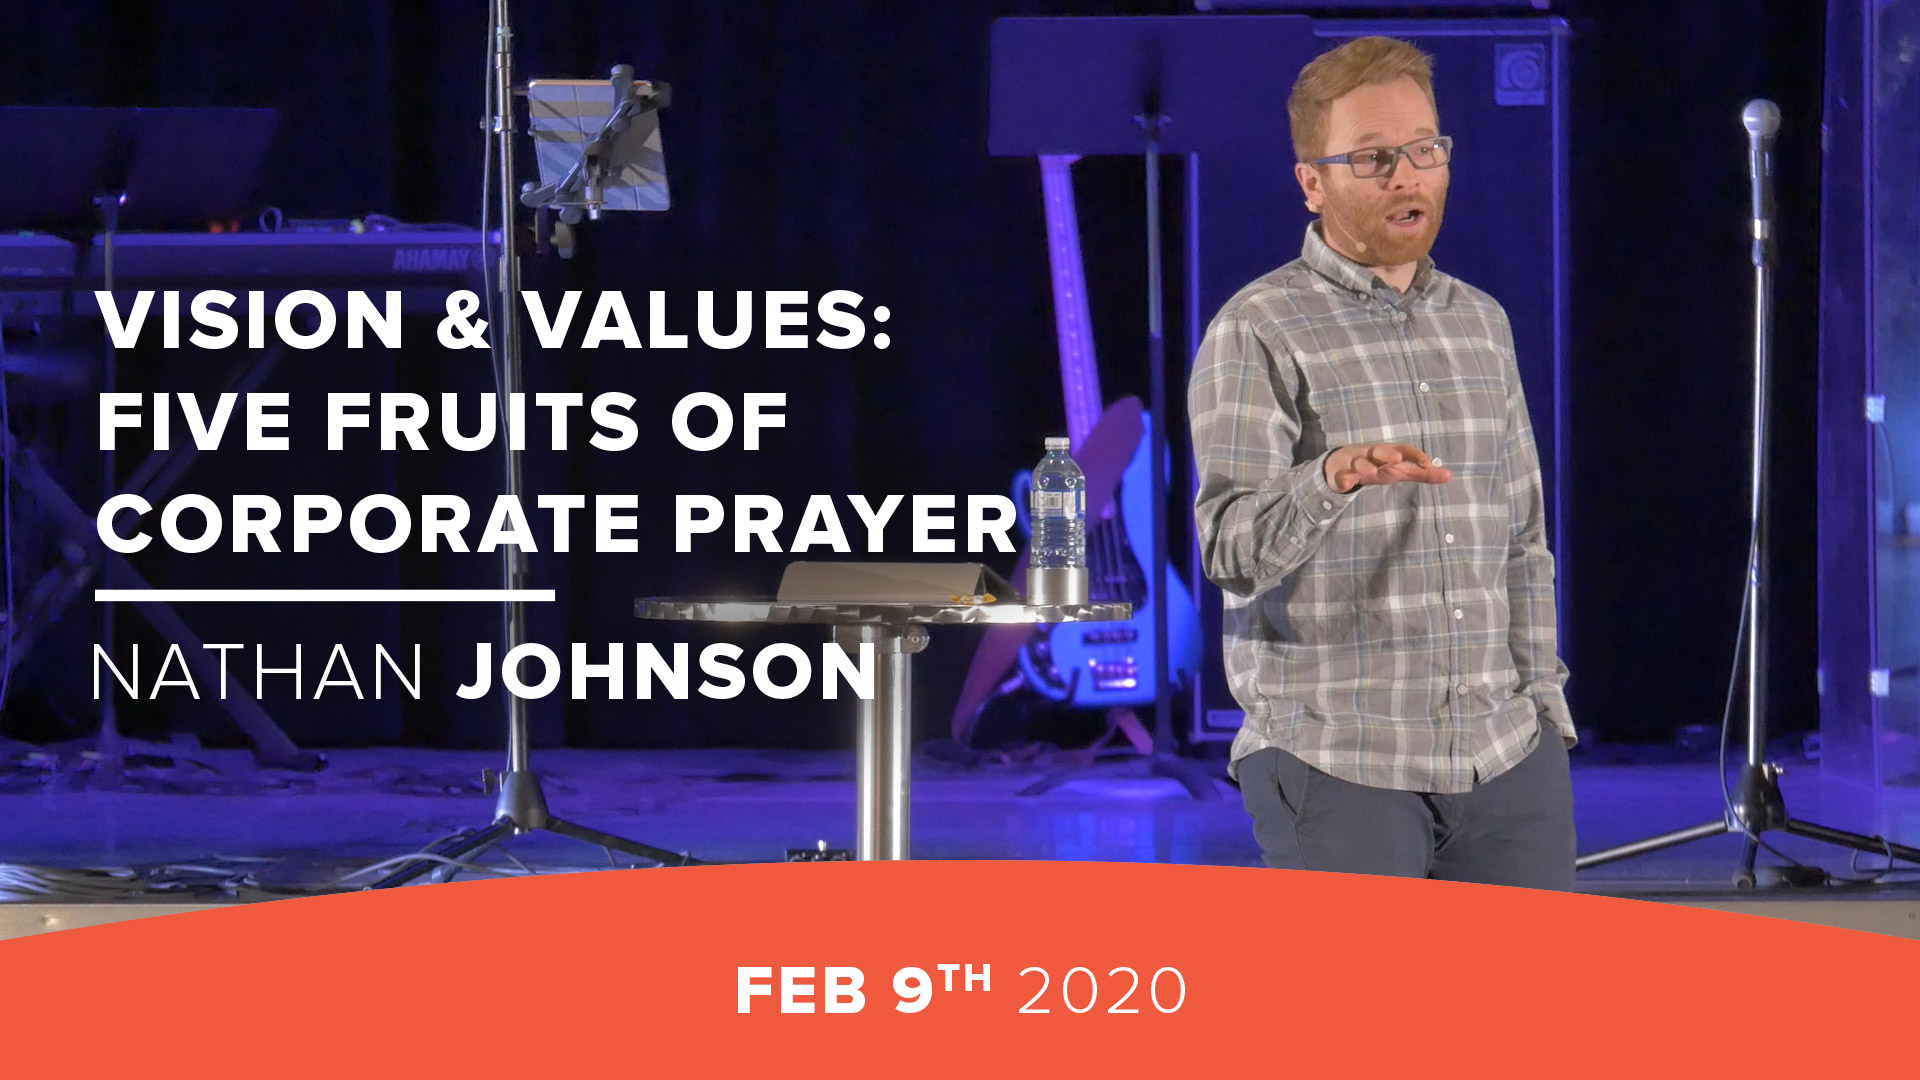 Vision & Values: Five Fruits of Corporate Prayer